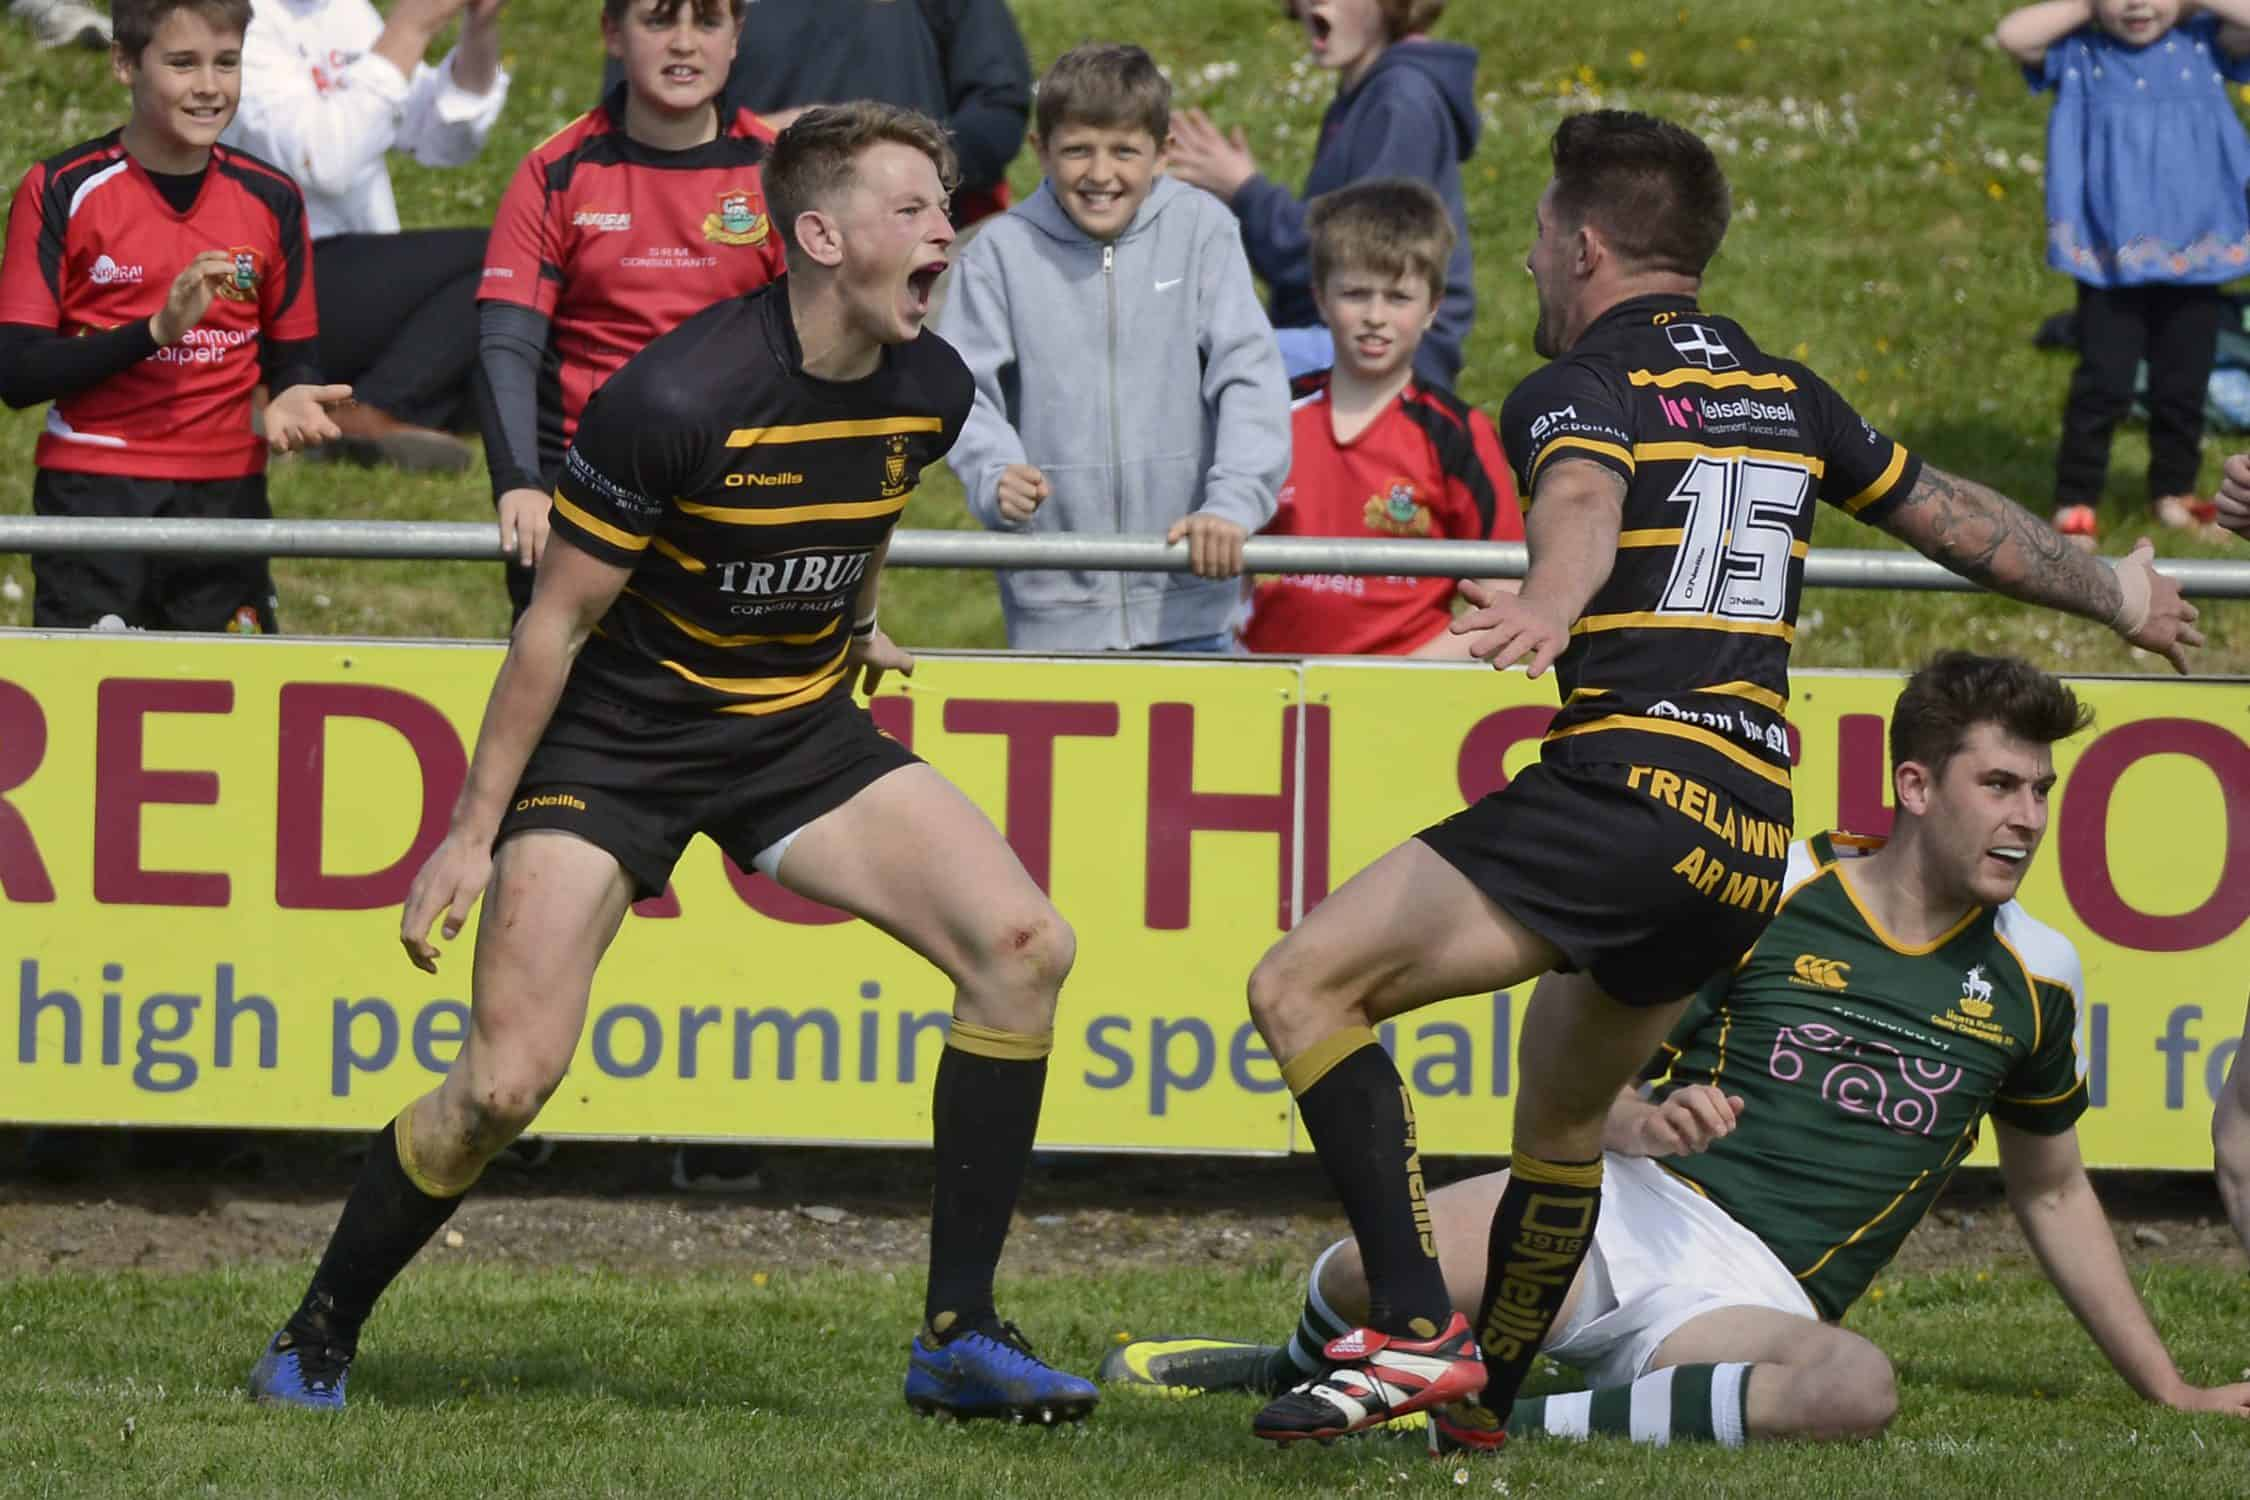 Cornwall v Hertfordshire, Redruth UK – 11 May 2019